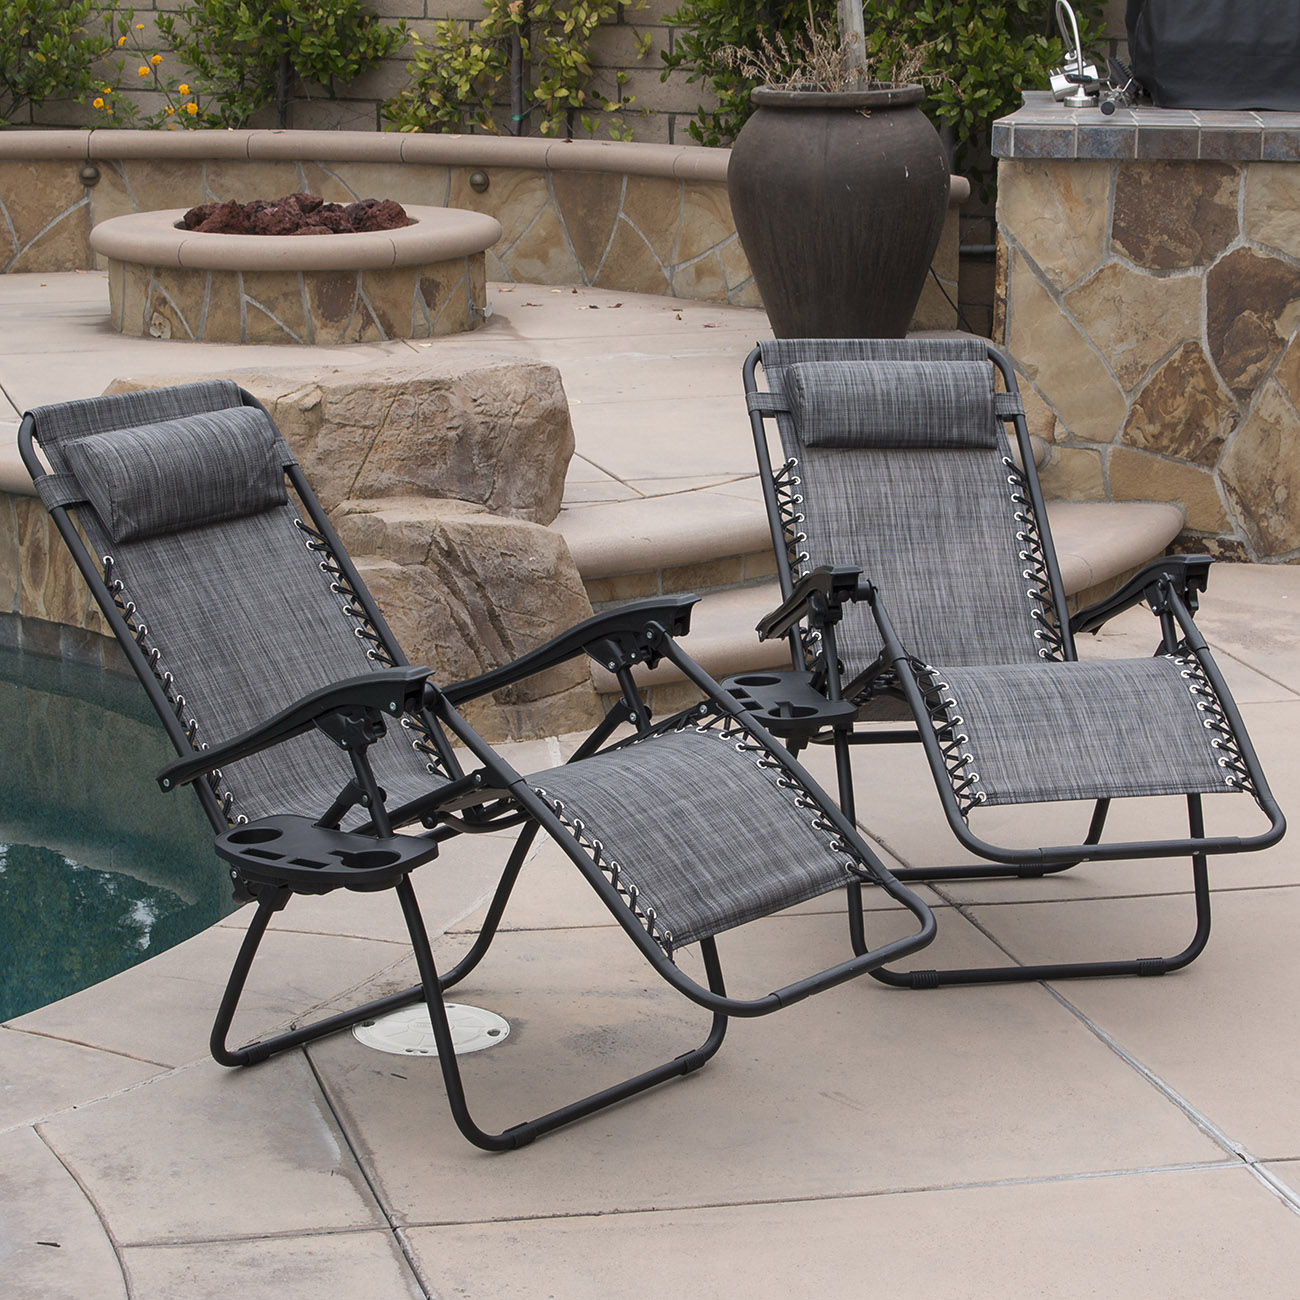 BELLEZE | Zero Anti Gravity Reclining Gray Chairs | Set of 2 | Tray | Cup Holder | Mobile Device Slot Holder | Outdoor PartNumber: SPM9196898317